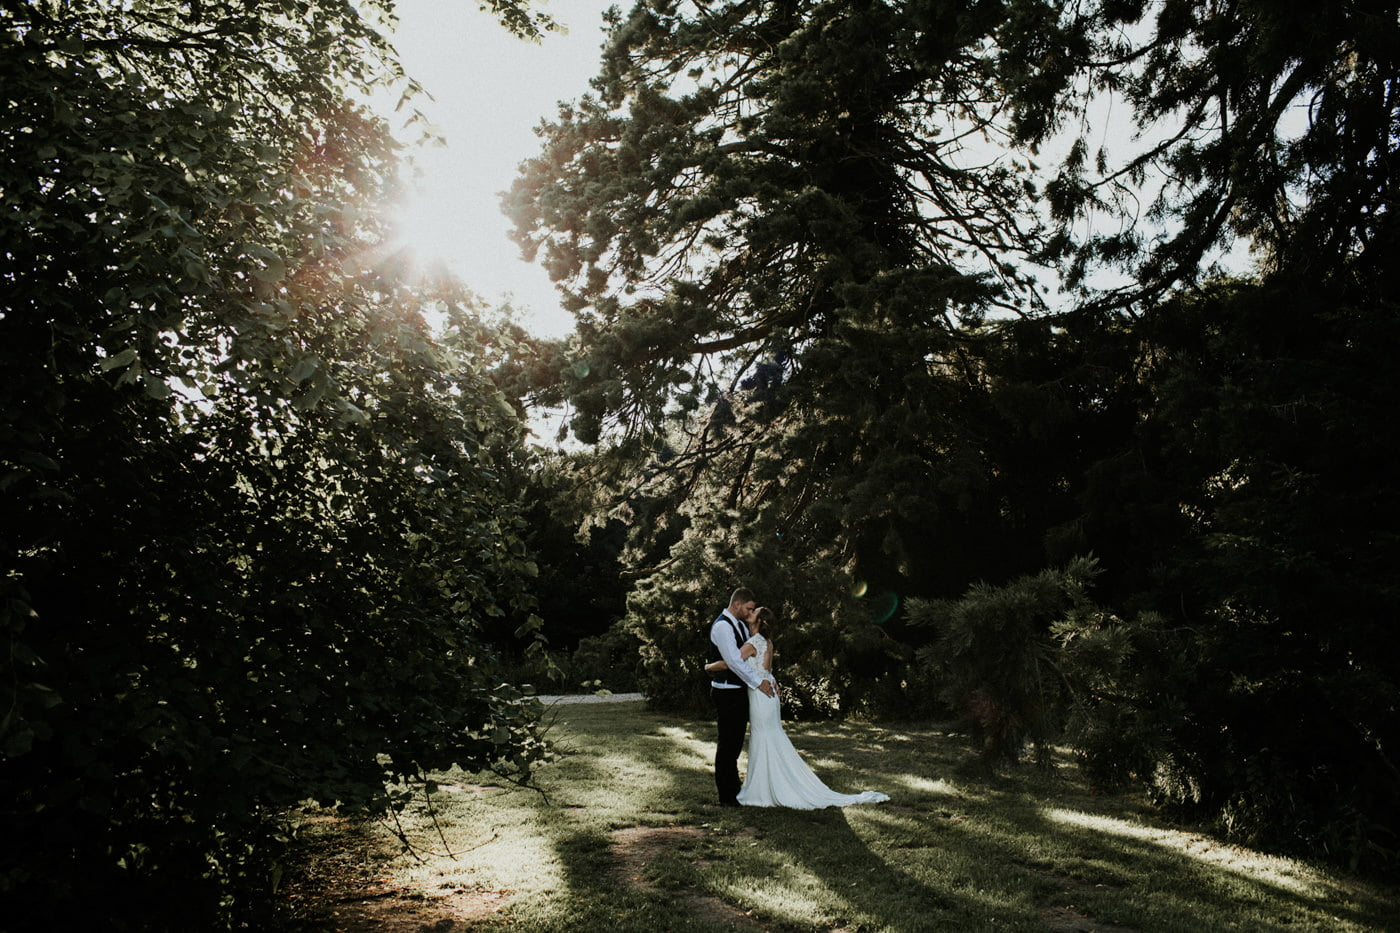 Katy and Adam, Elmhay Park, Somerset 29